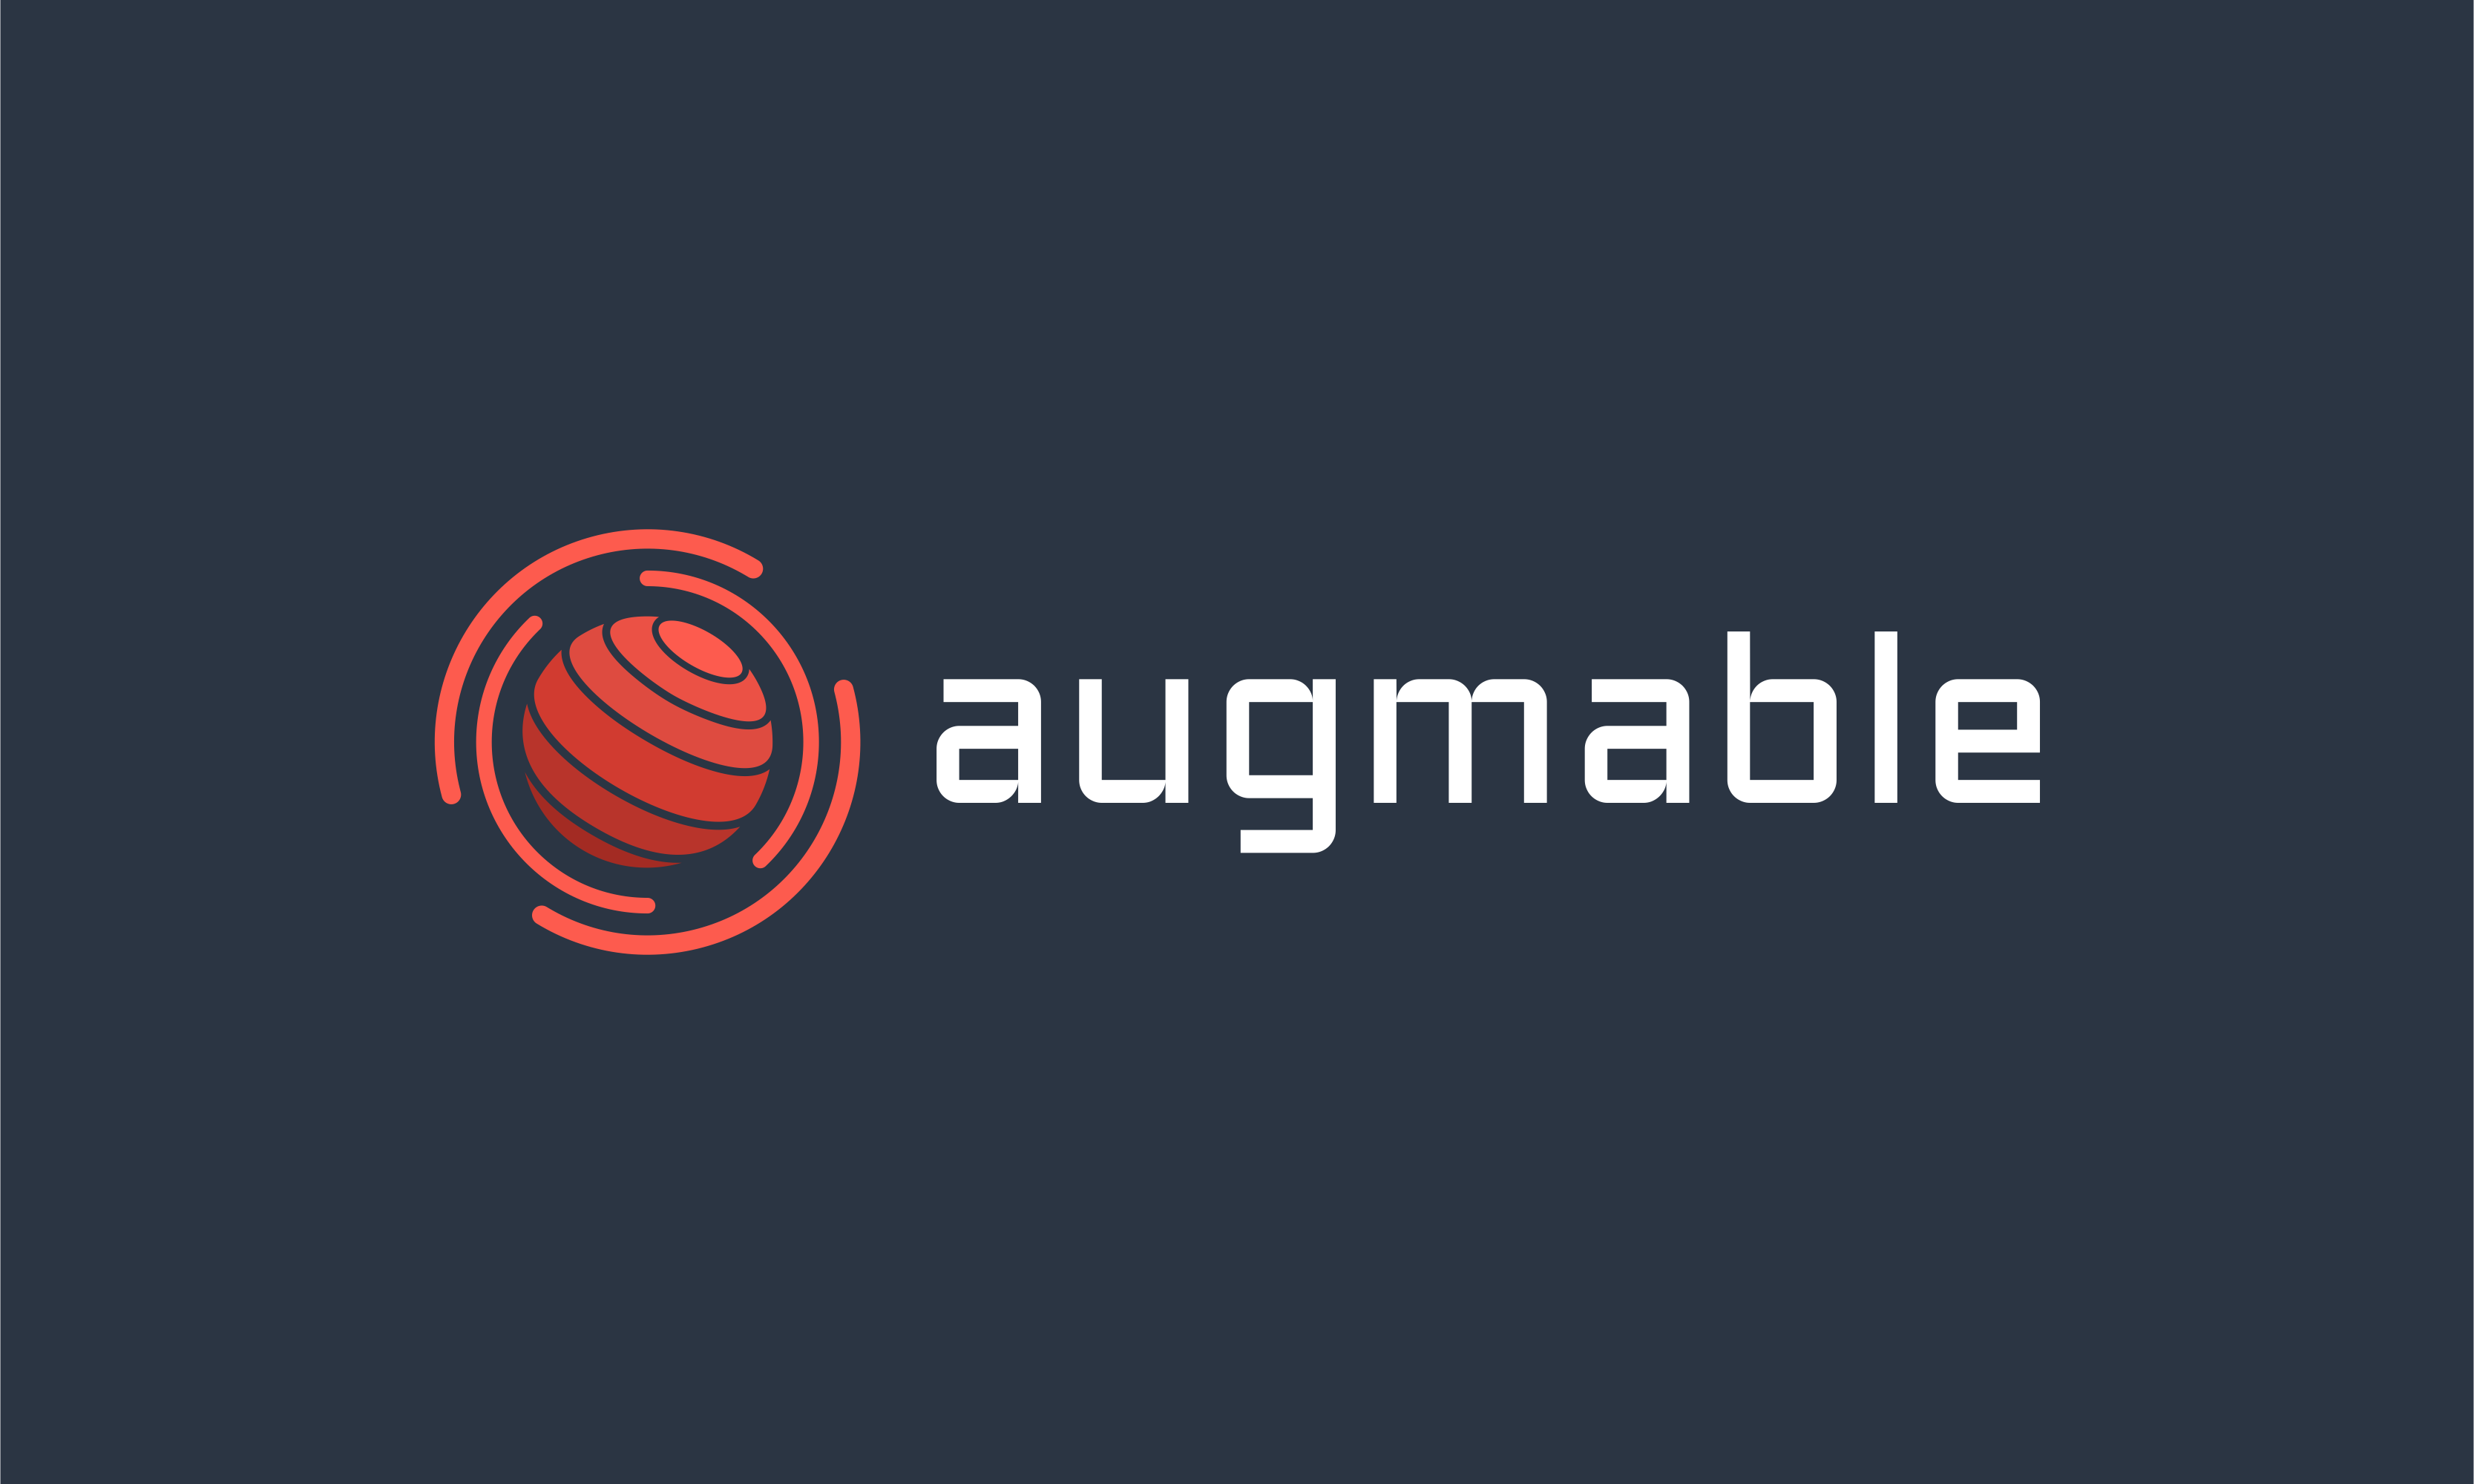 Augmable